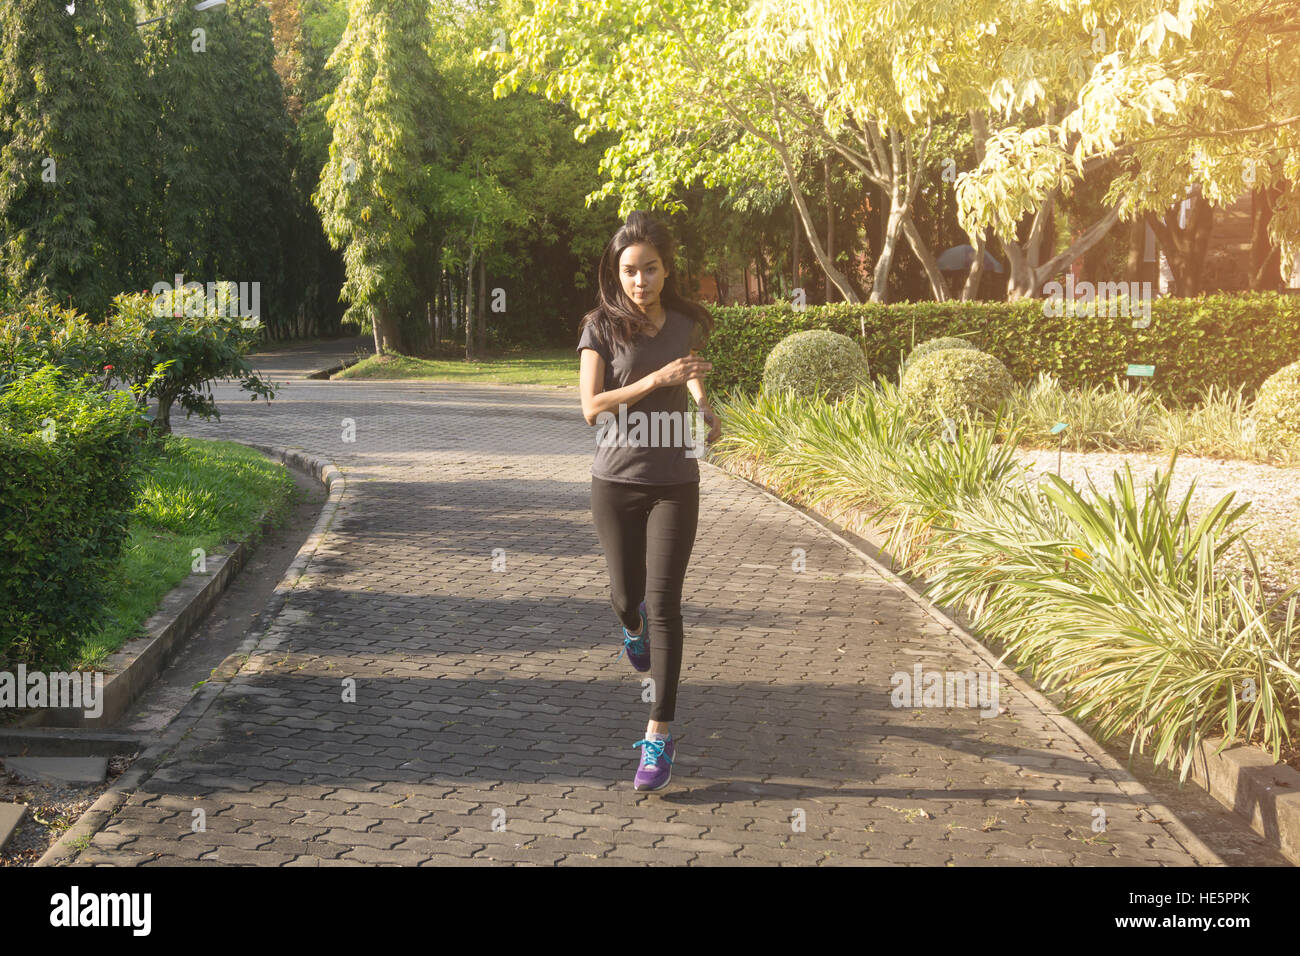 Women runners sprinting outdoors. Sportive people in public park urban area healthy lifestyle and sport concepts. - Stock Image